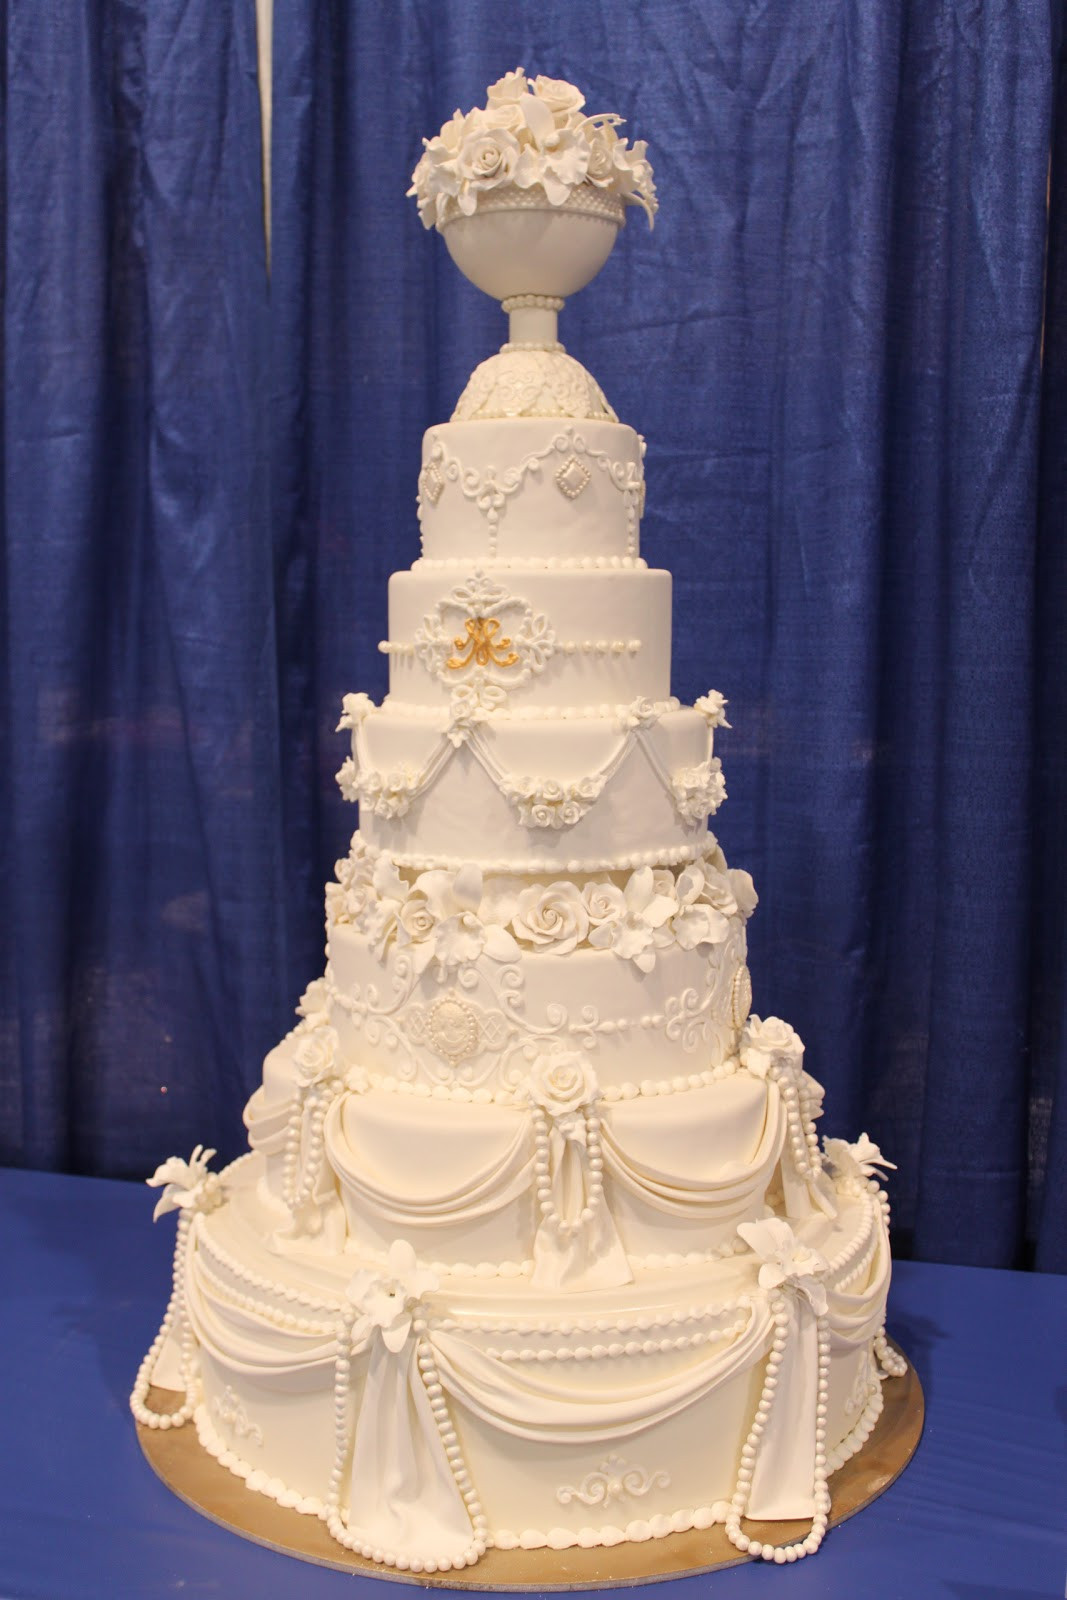 Extravigant Wedding Cakes  ICES 2011 International Cake Exploration Society The